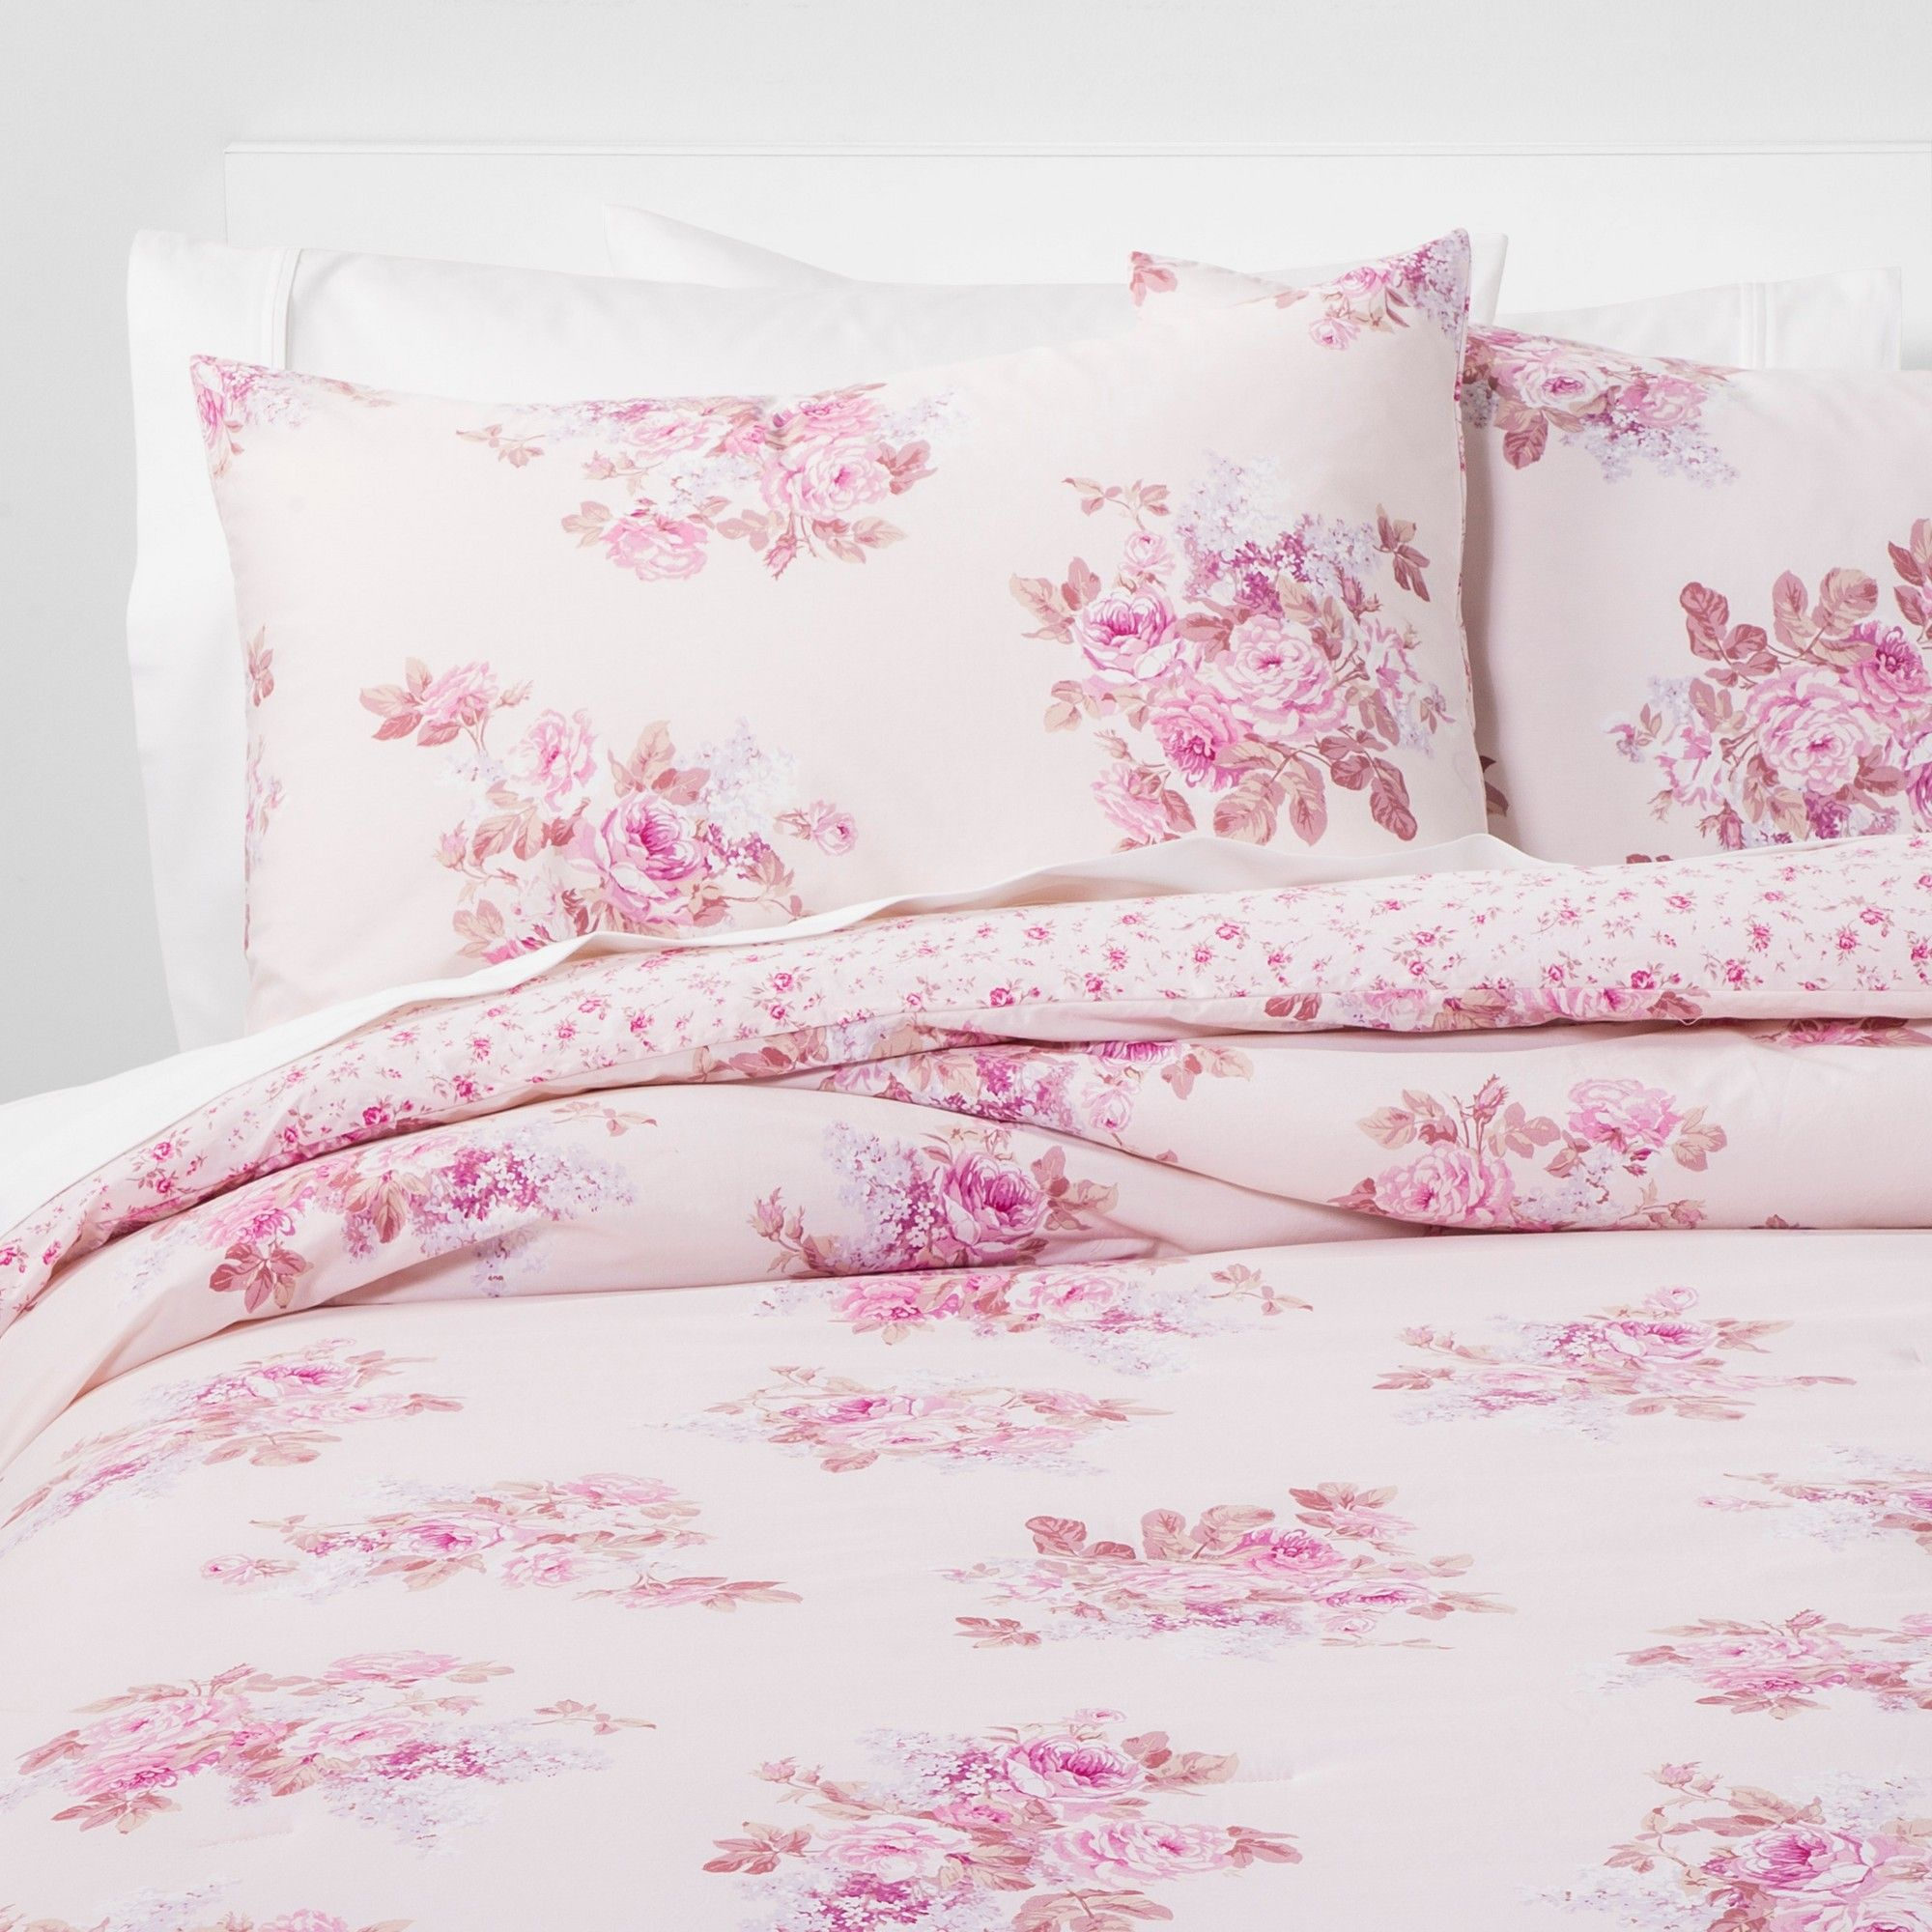 Twin Bouquet Comforter Set Pink Blush Simply Shabby Chic Shabby Chic Room Simply Shabby Chic Chic Bedding